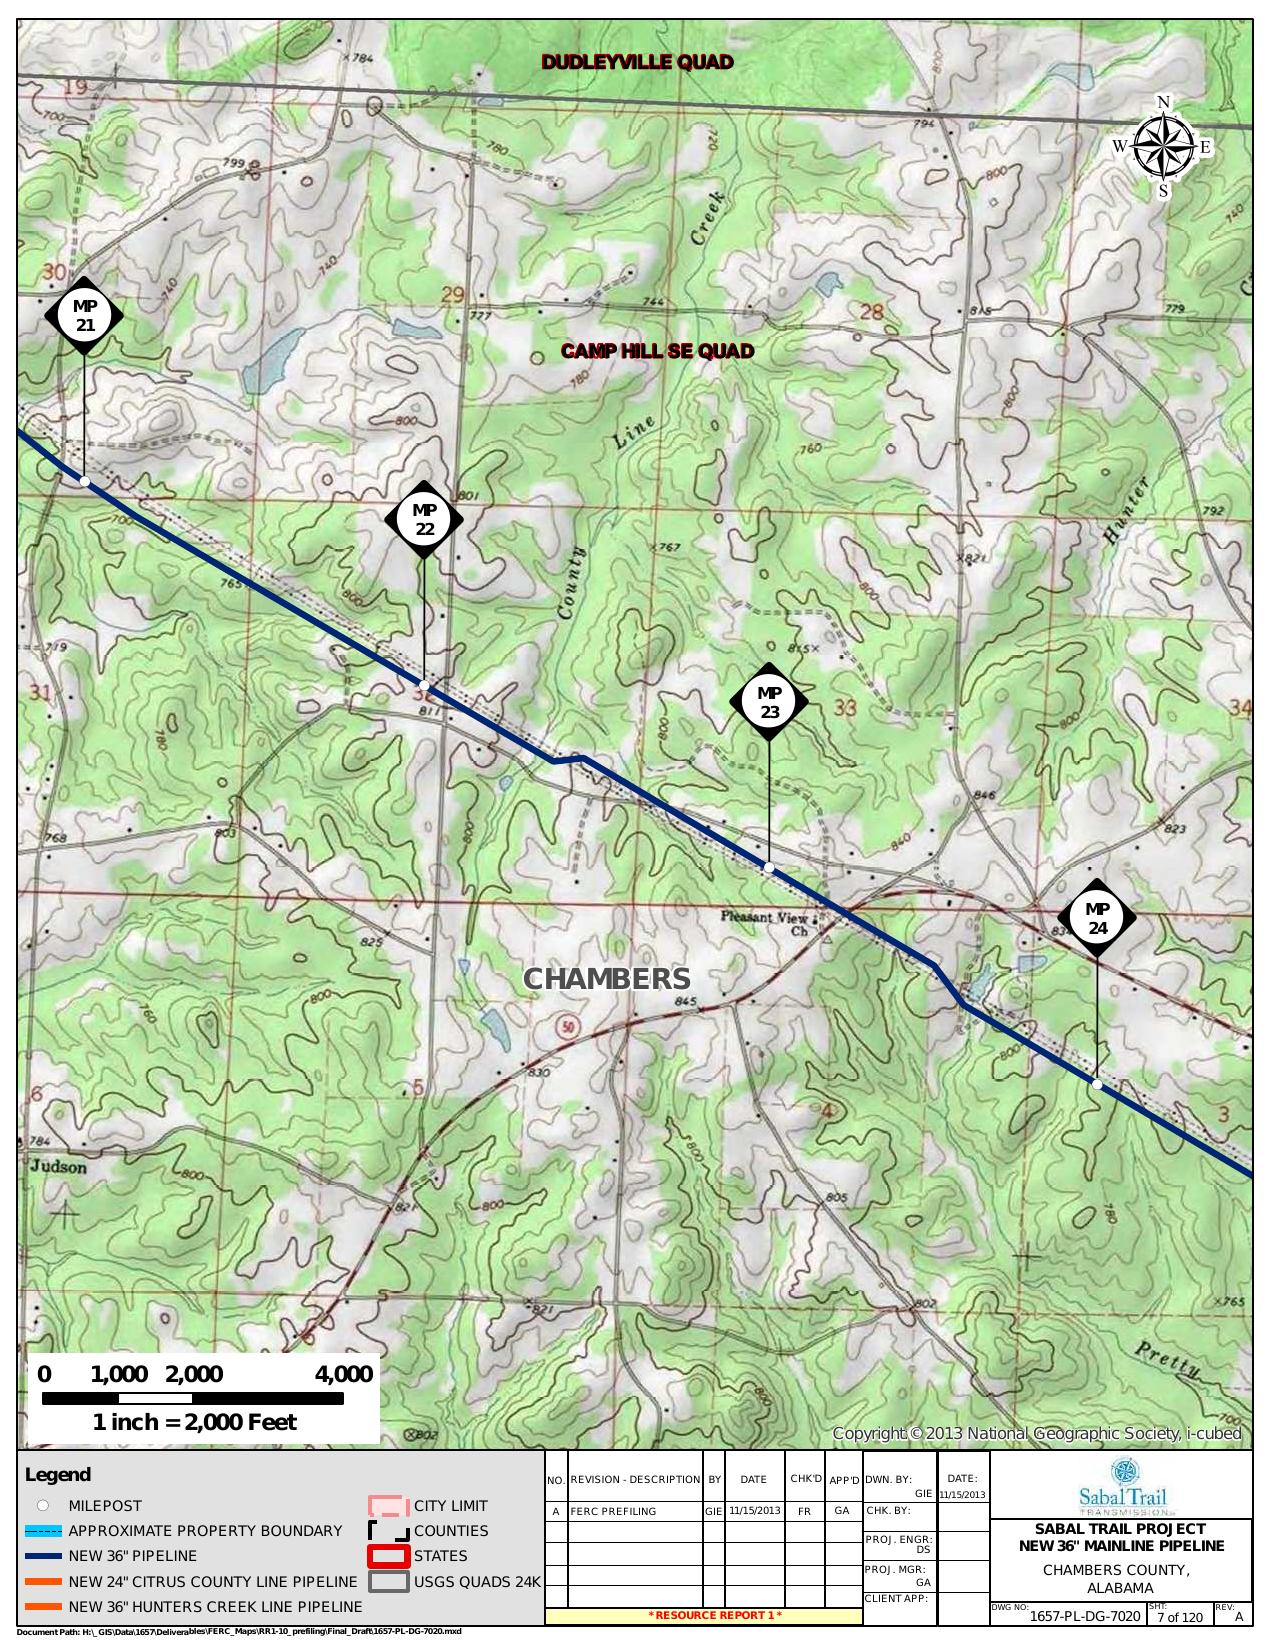 County Line Creek, Camp Hill SE Quad, Chambers County, Alabama, in General Project Description, by SpectraBusters, for FERC Docket No. PF14-1-000, 15 November 2013, converted by SpectraBusters